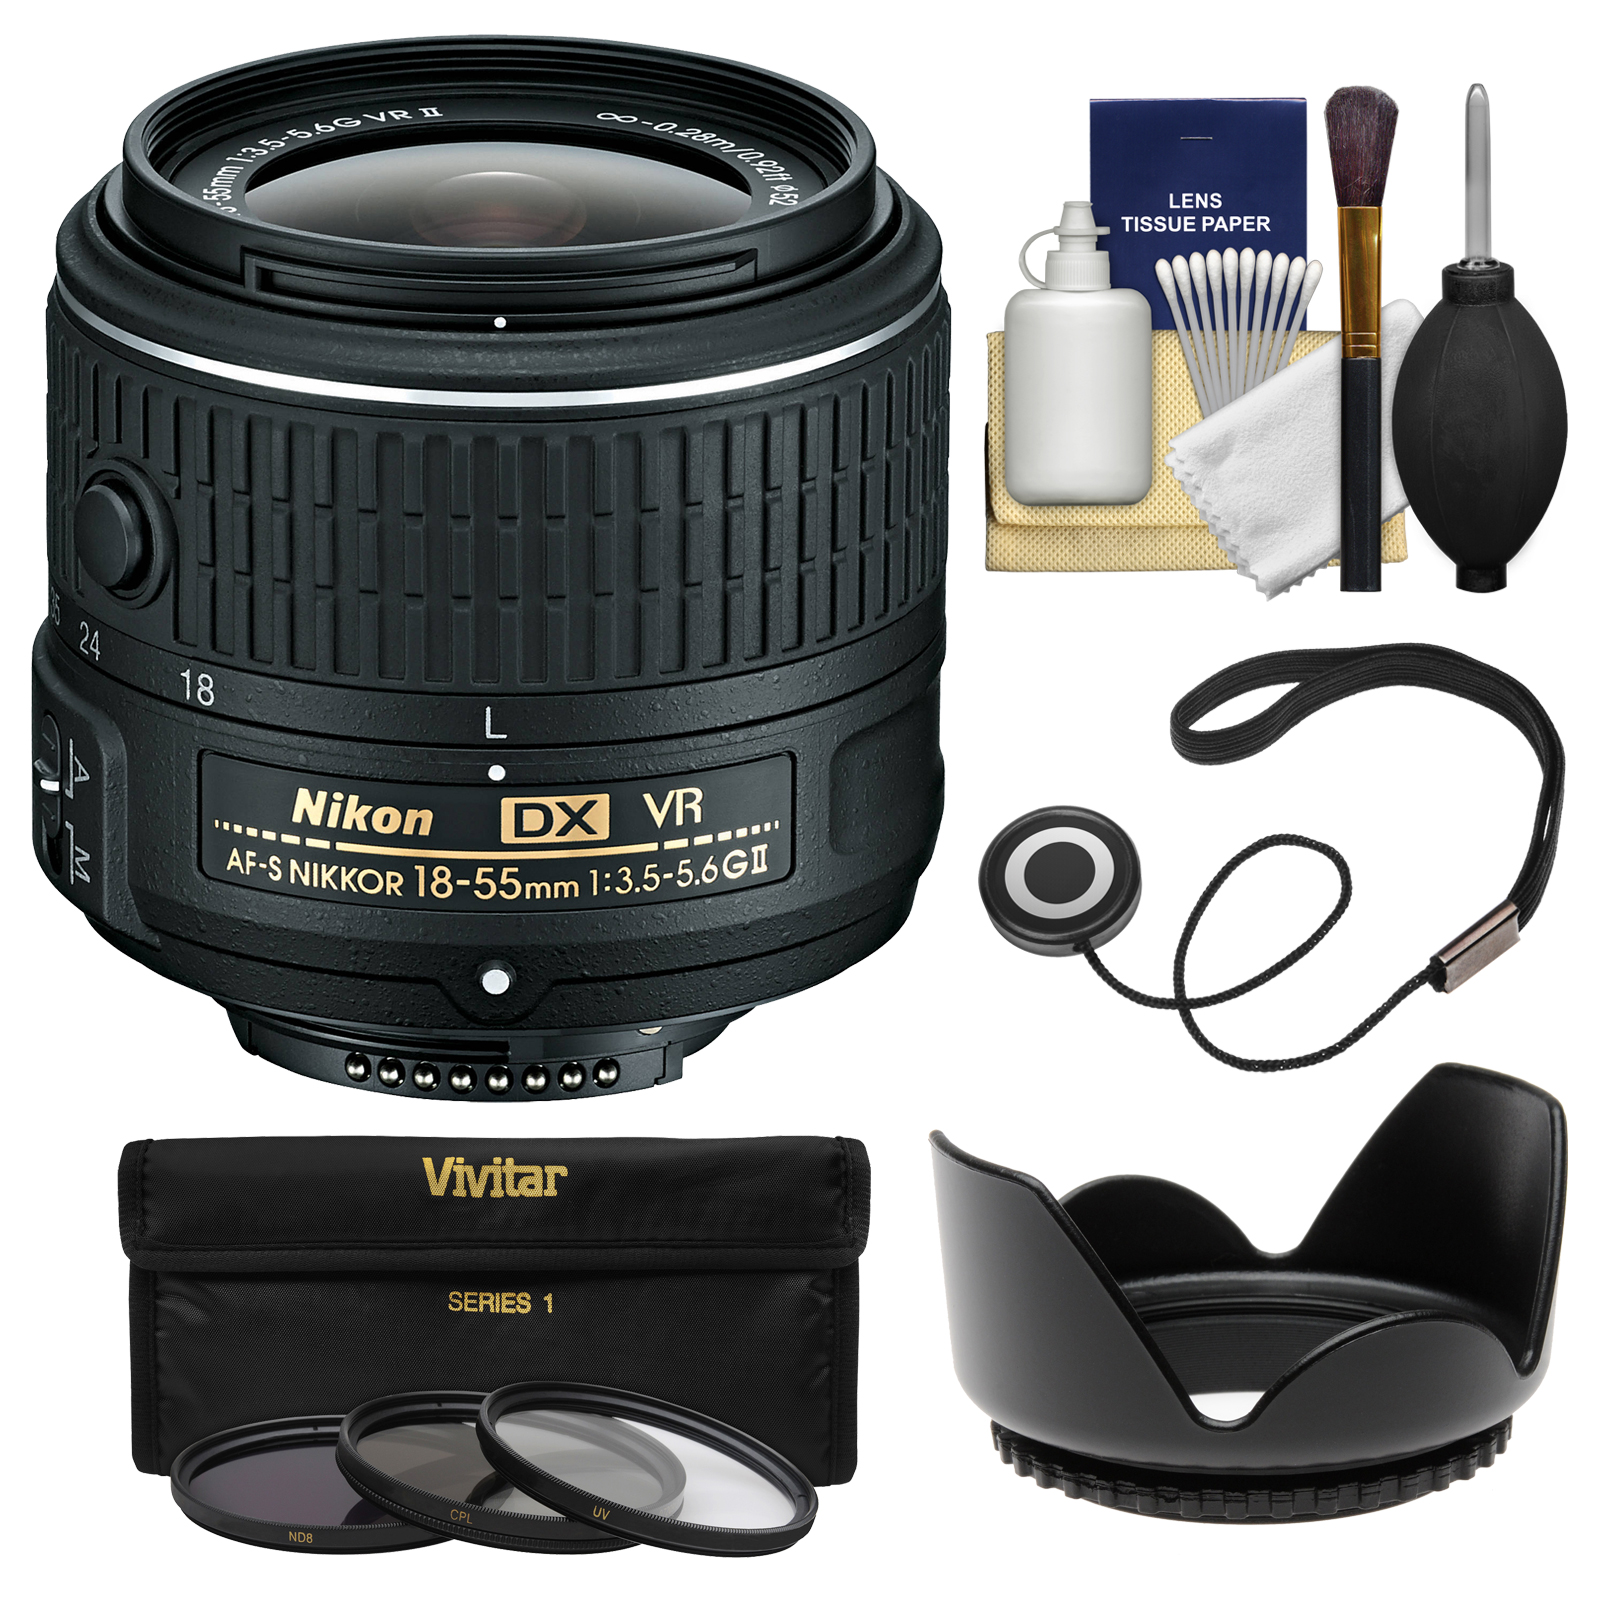 Nikon 18-55mm f/3.5-5.6G VR II DX AF-S Zoom-Nikkor Lens - Factory Refurbished with 3 UV/CPL/ND8 Filters + Hood + Kit